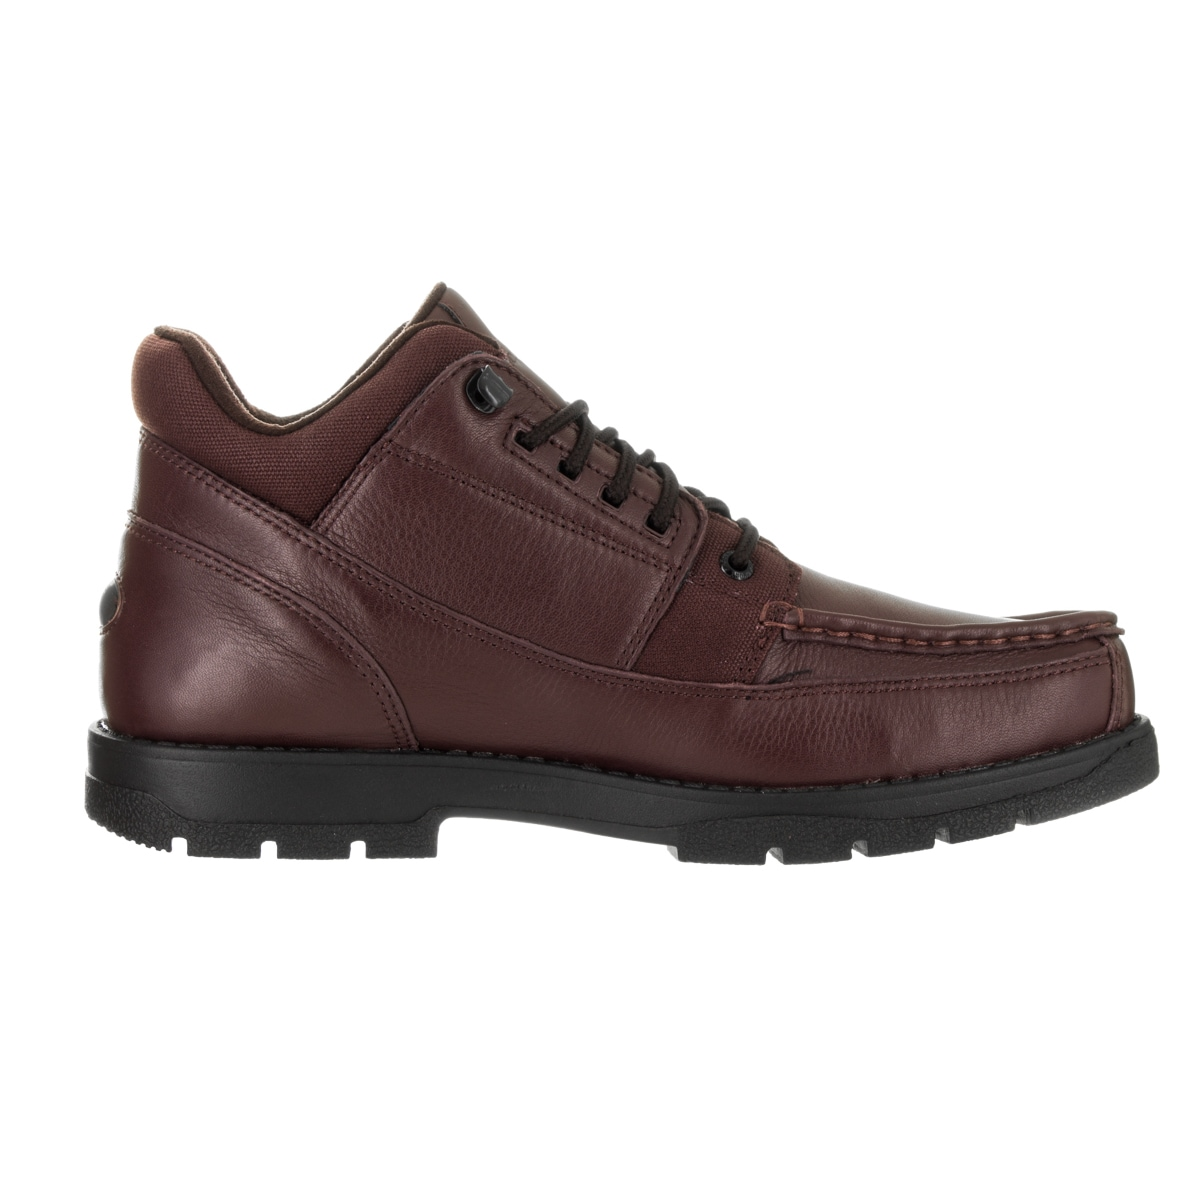 Rockport Men's Marangue Burgundy Leather Casual Hiking Boots - Free  Shipping Today - Overstock.com - 20019631